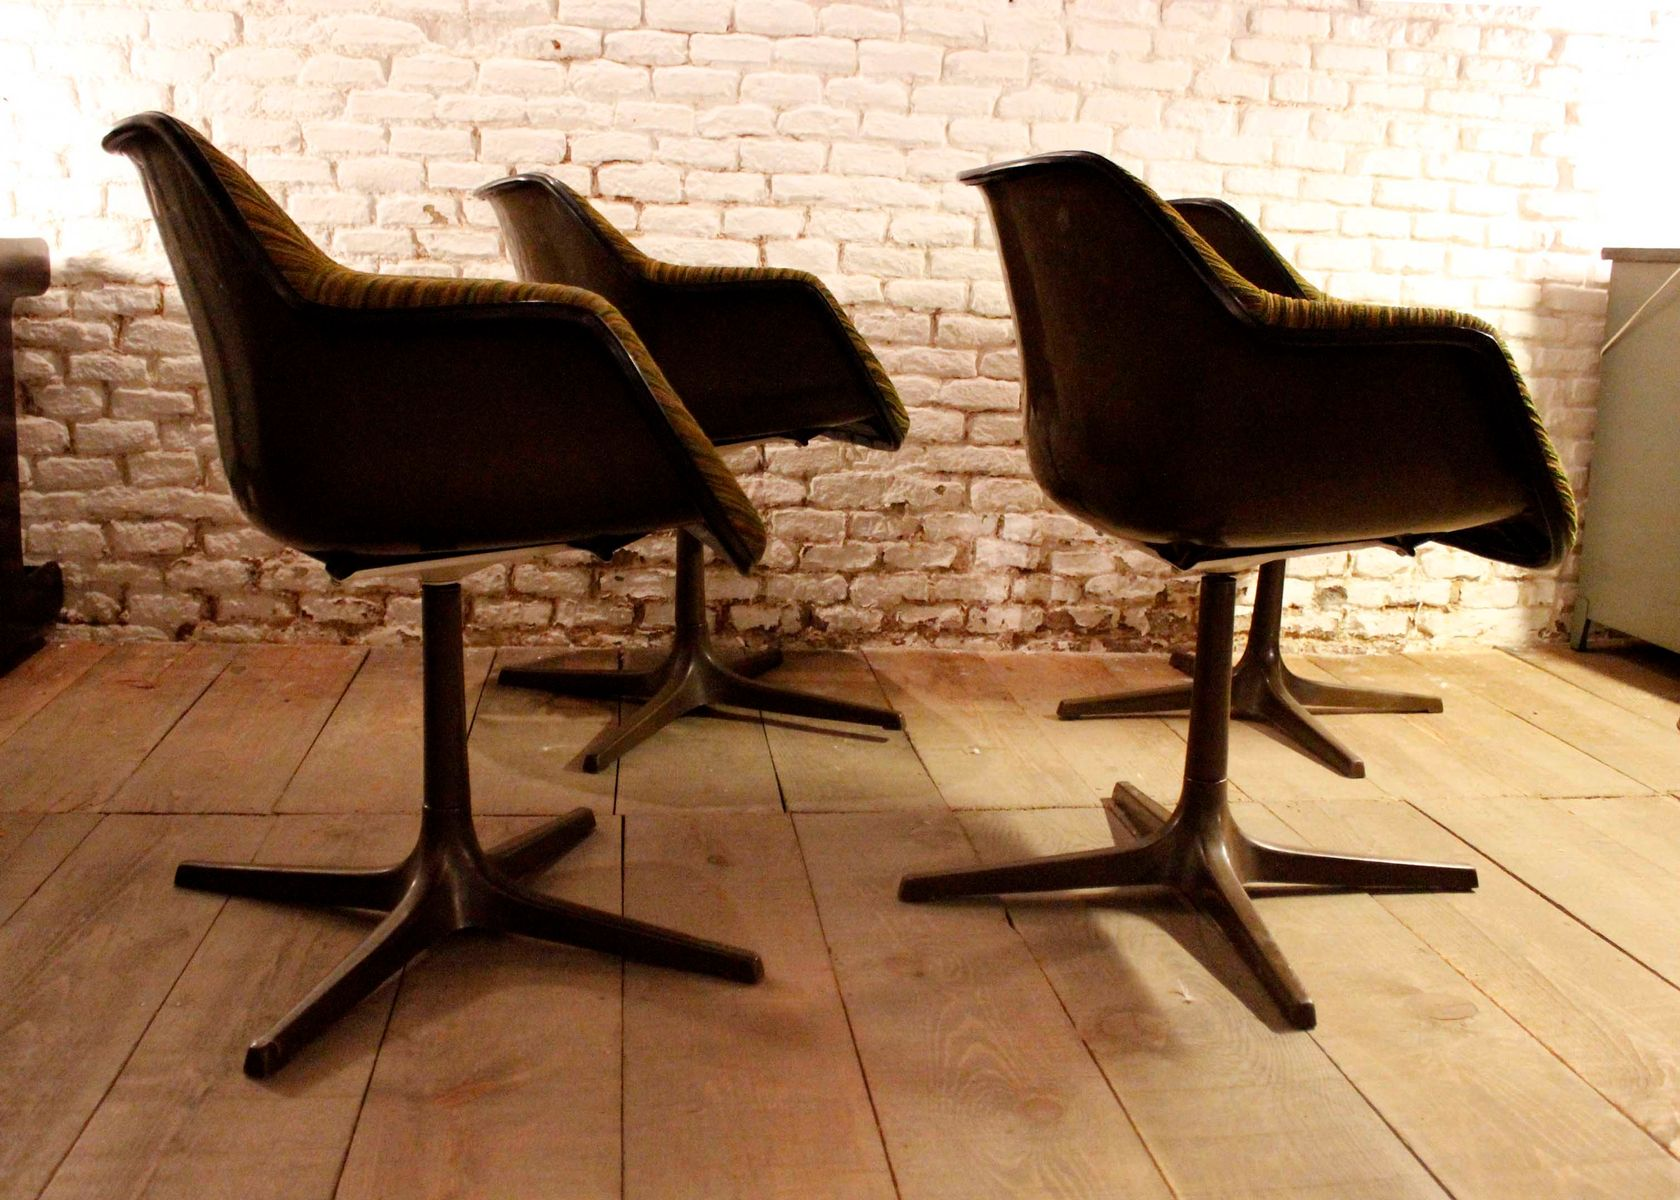 Chairs By Robin Day For Overmann 1960s Set Of 4 For Sale At Pamono